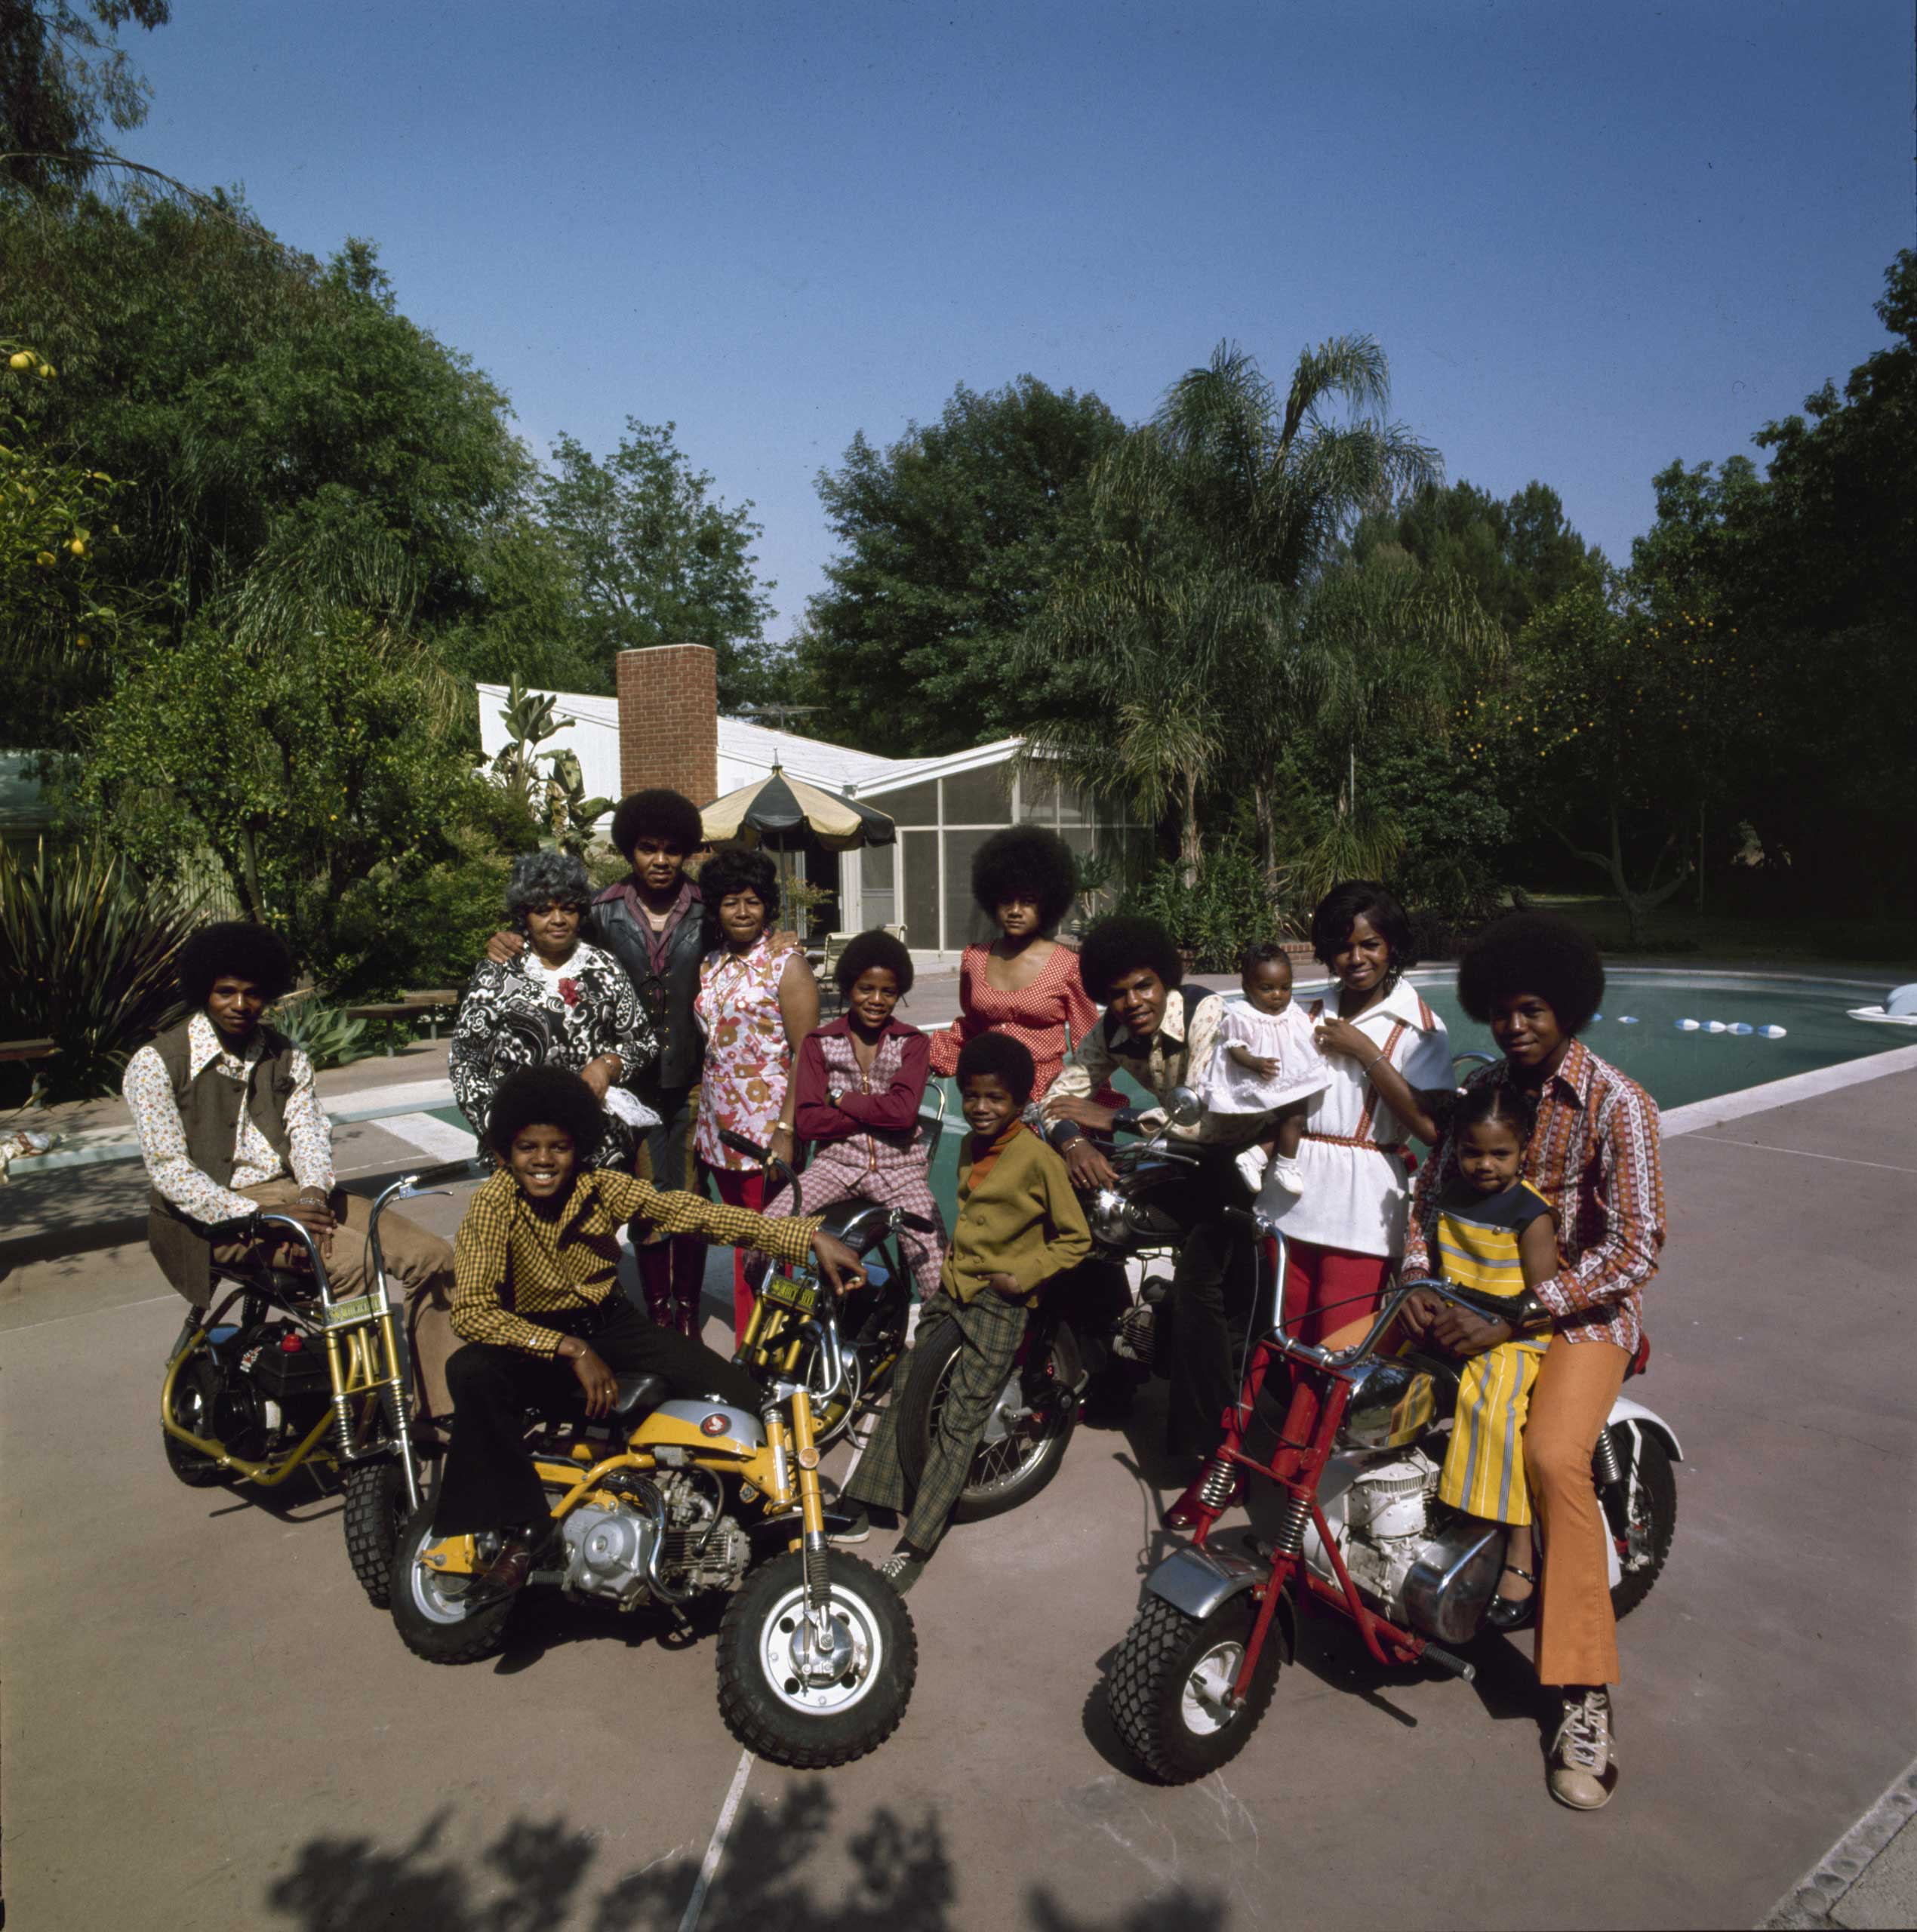 THE JACKSONS: While the Jacksons faded from view, youngest brother Michael (on yellow bike) rose to international stardom and ignominy.